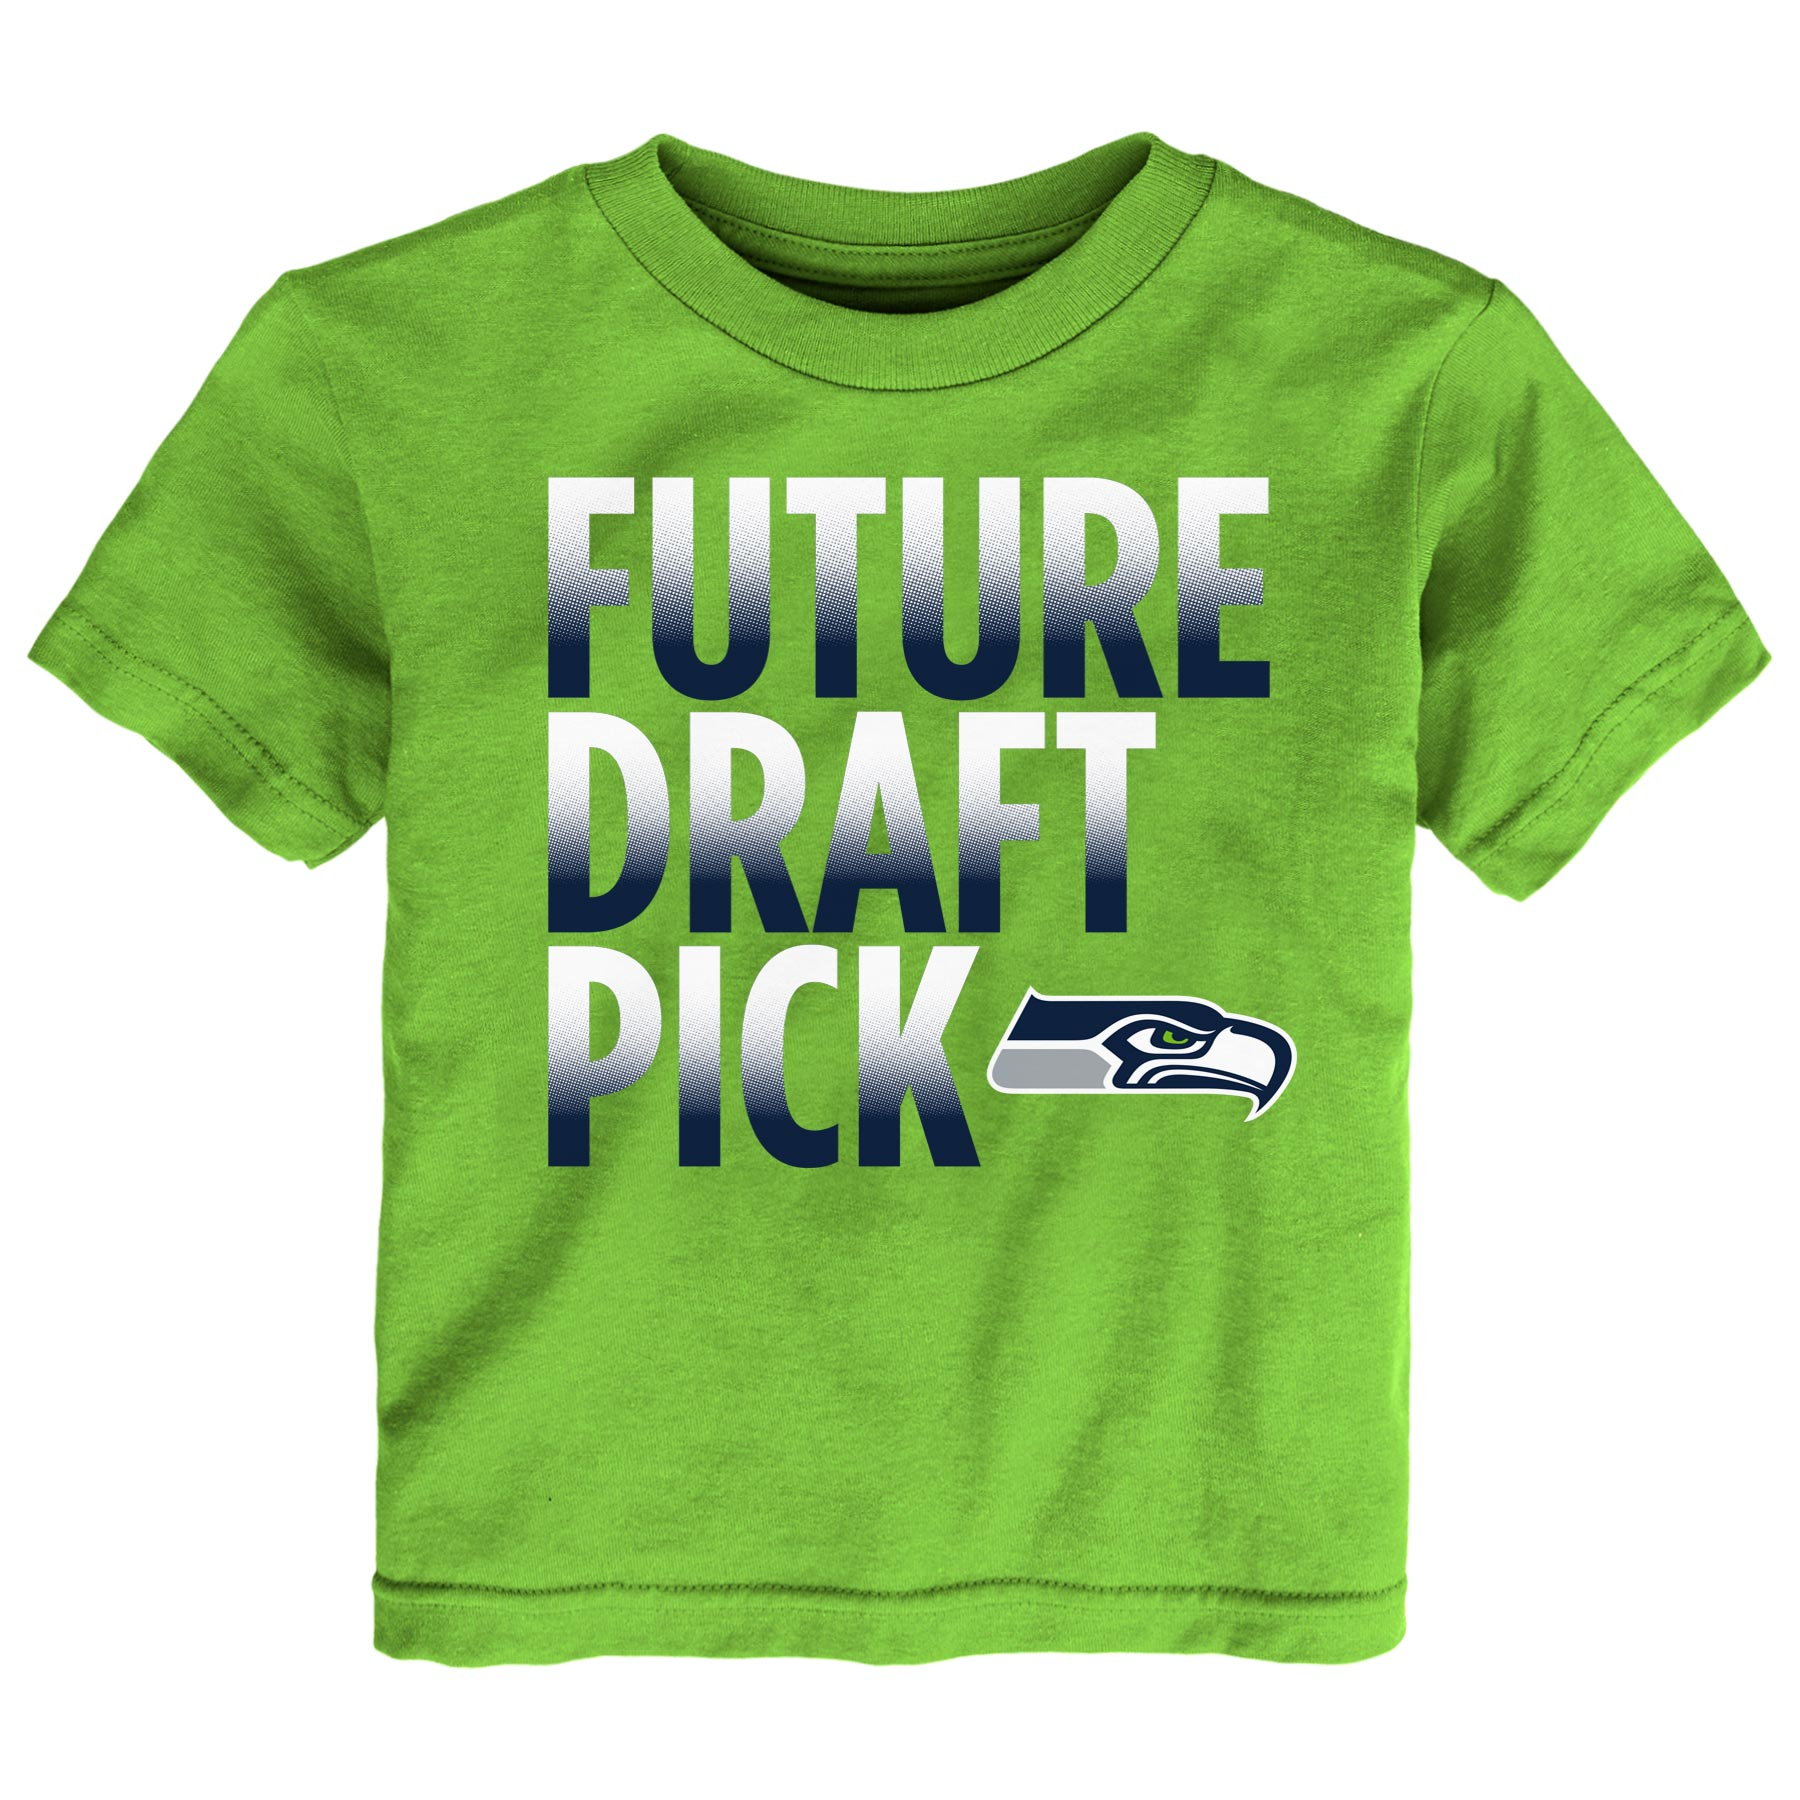 Seattle Seahawks Preschool Future Draft Pick T-Shirt - Neon Green